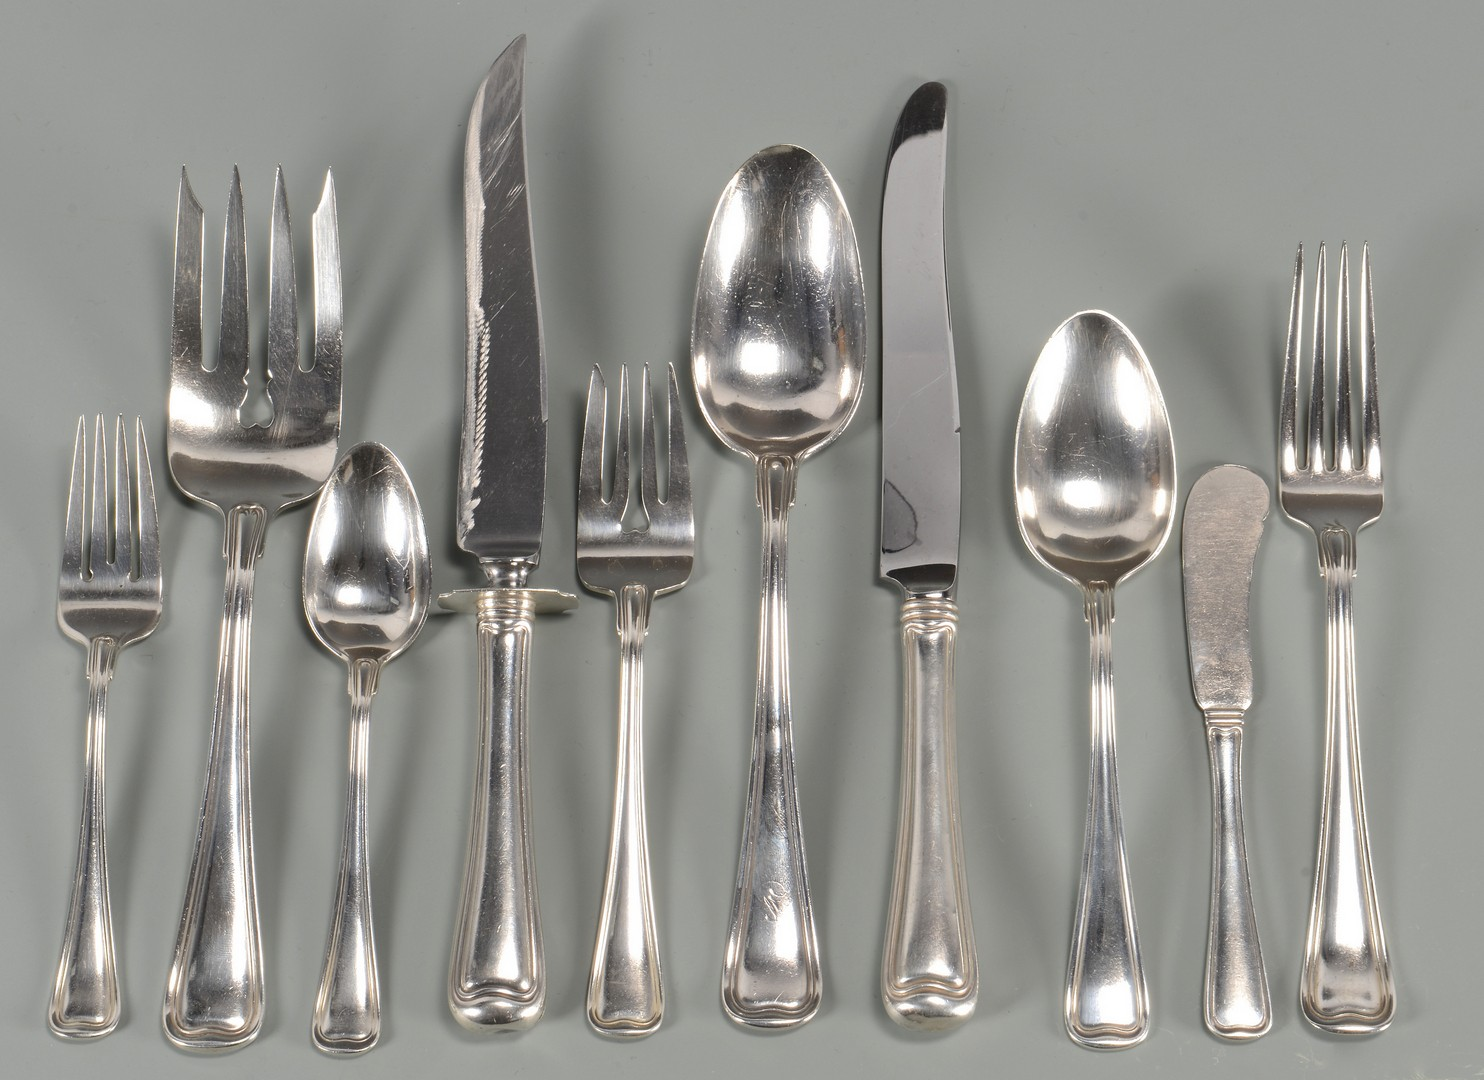 Lot 433 Gorham Quot Old French Quot Sterling Flatware Plus More